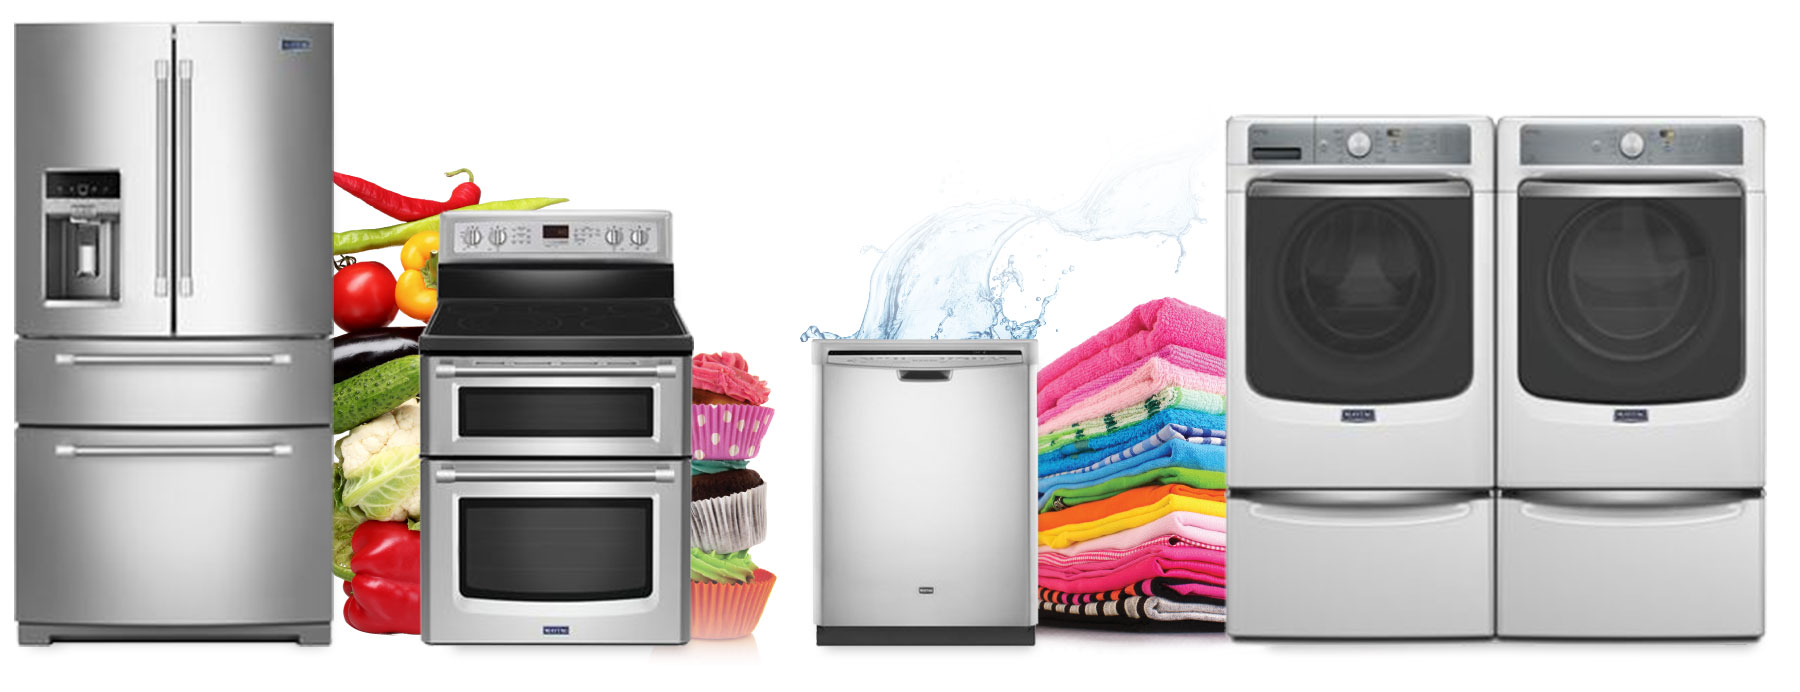 We have parts for most major brand appliances